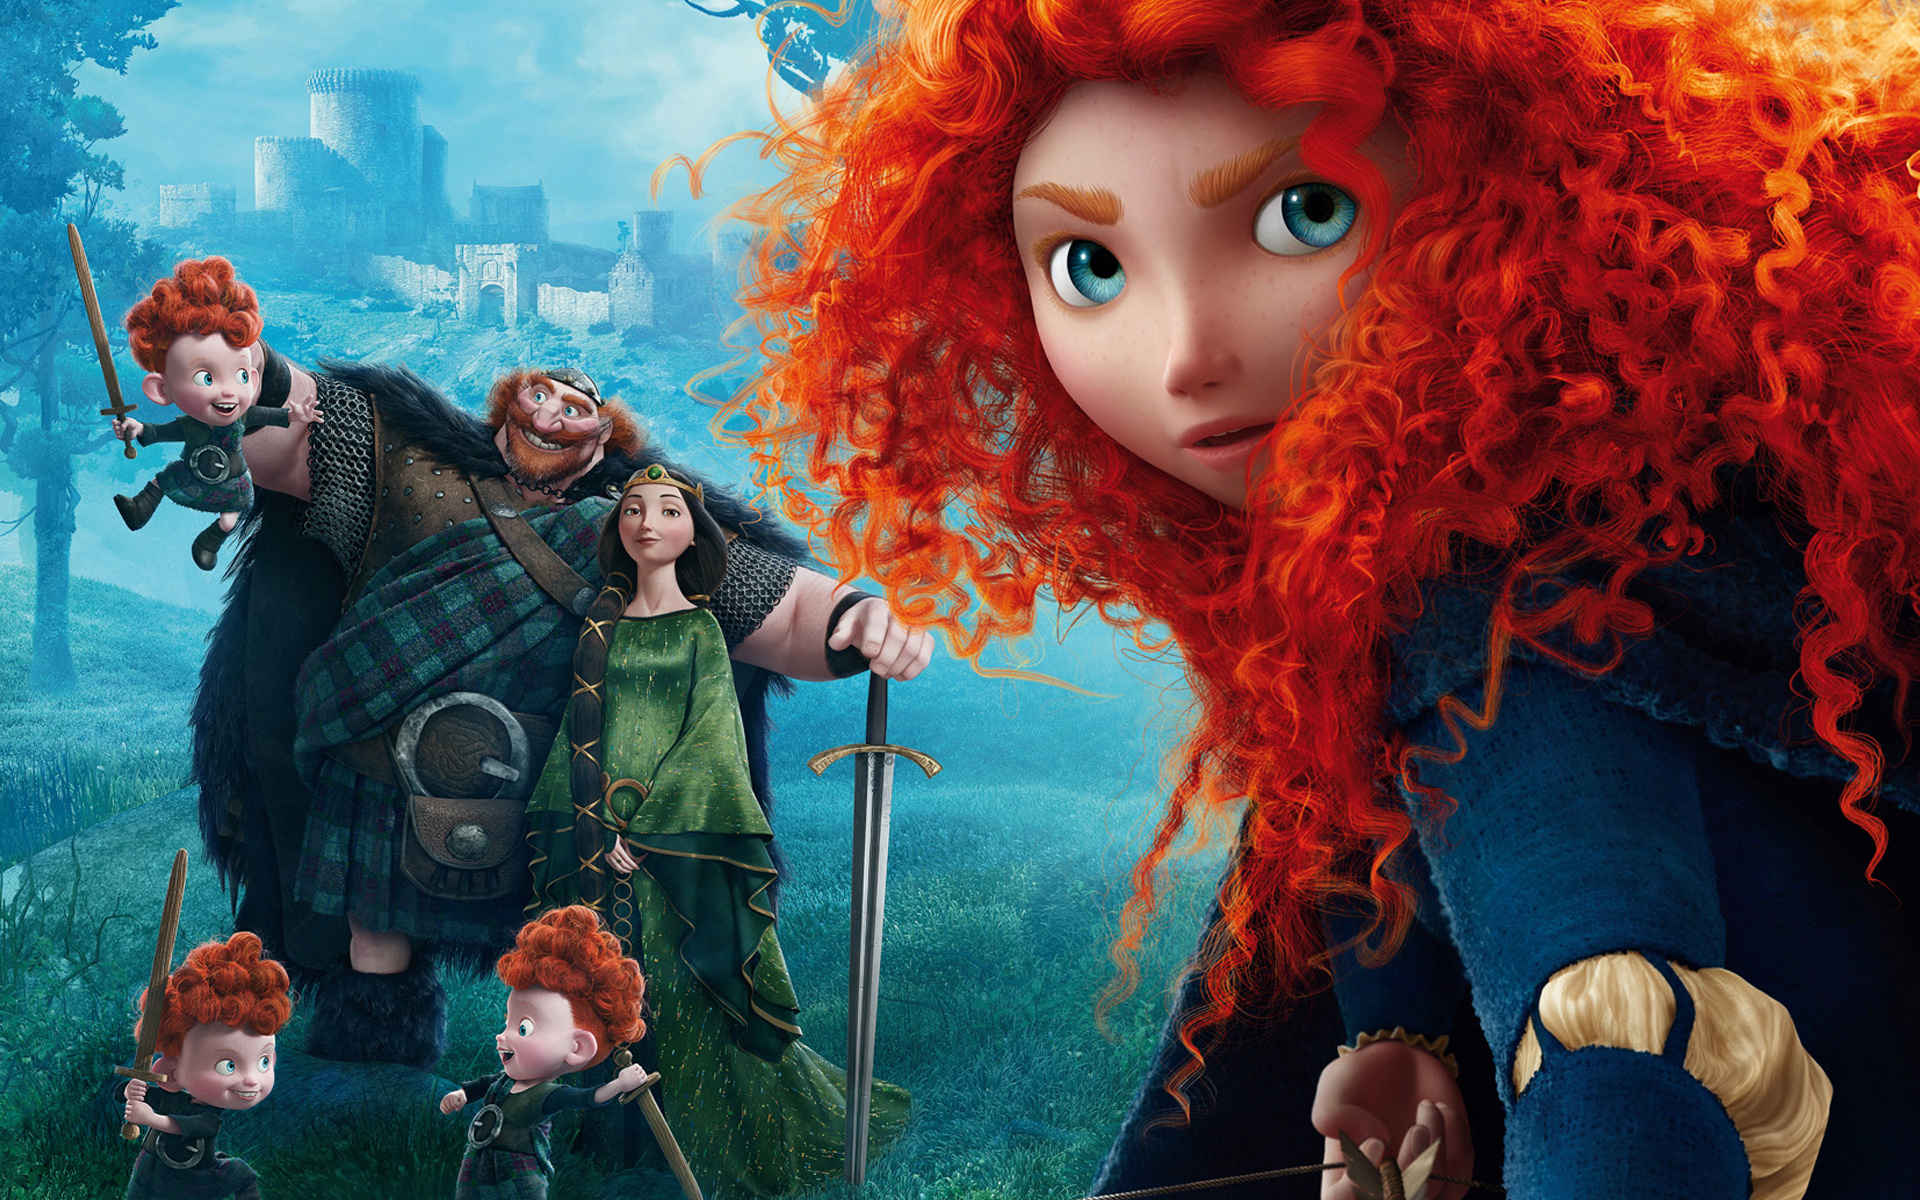 Pixar Brave Animated Wallpaper